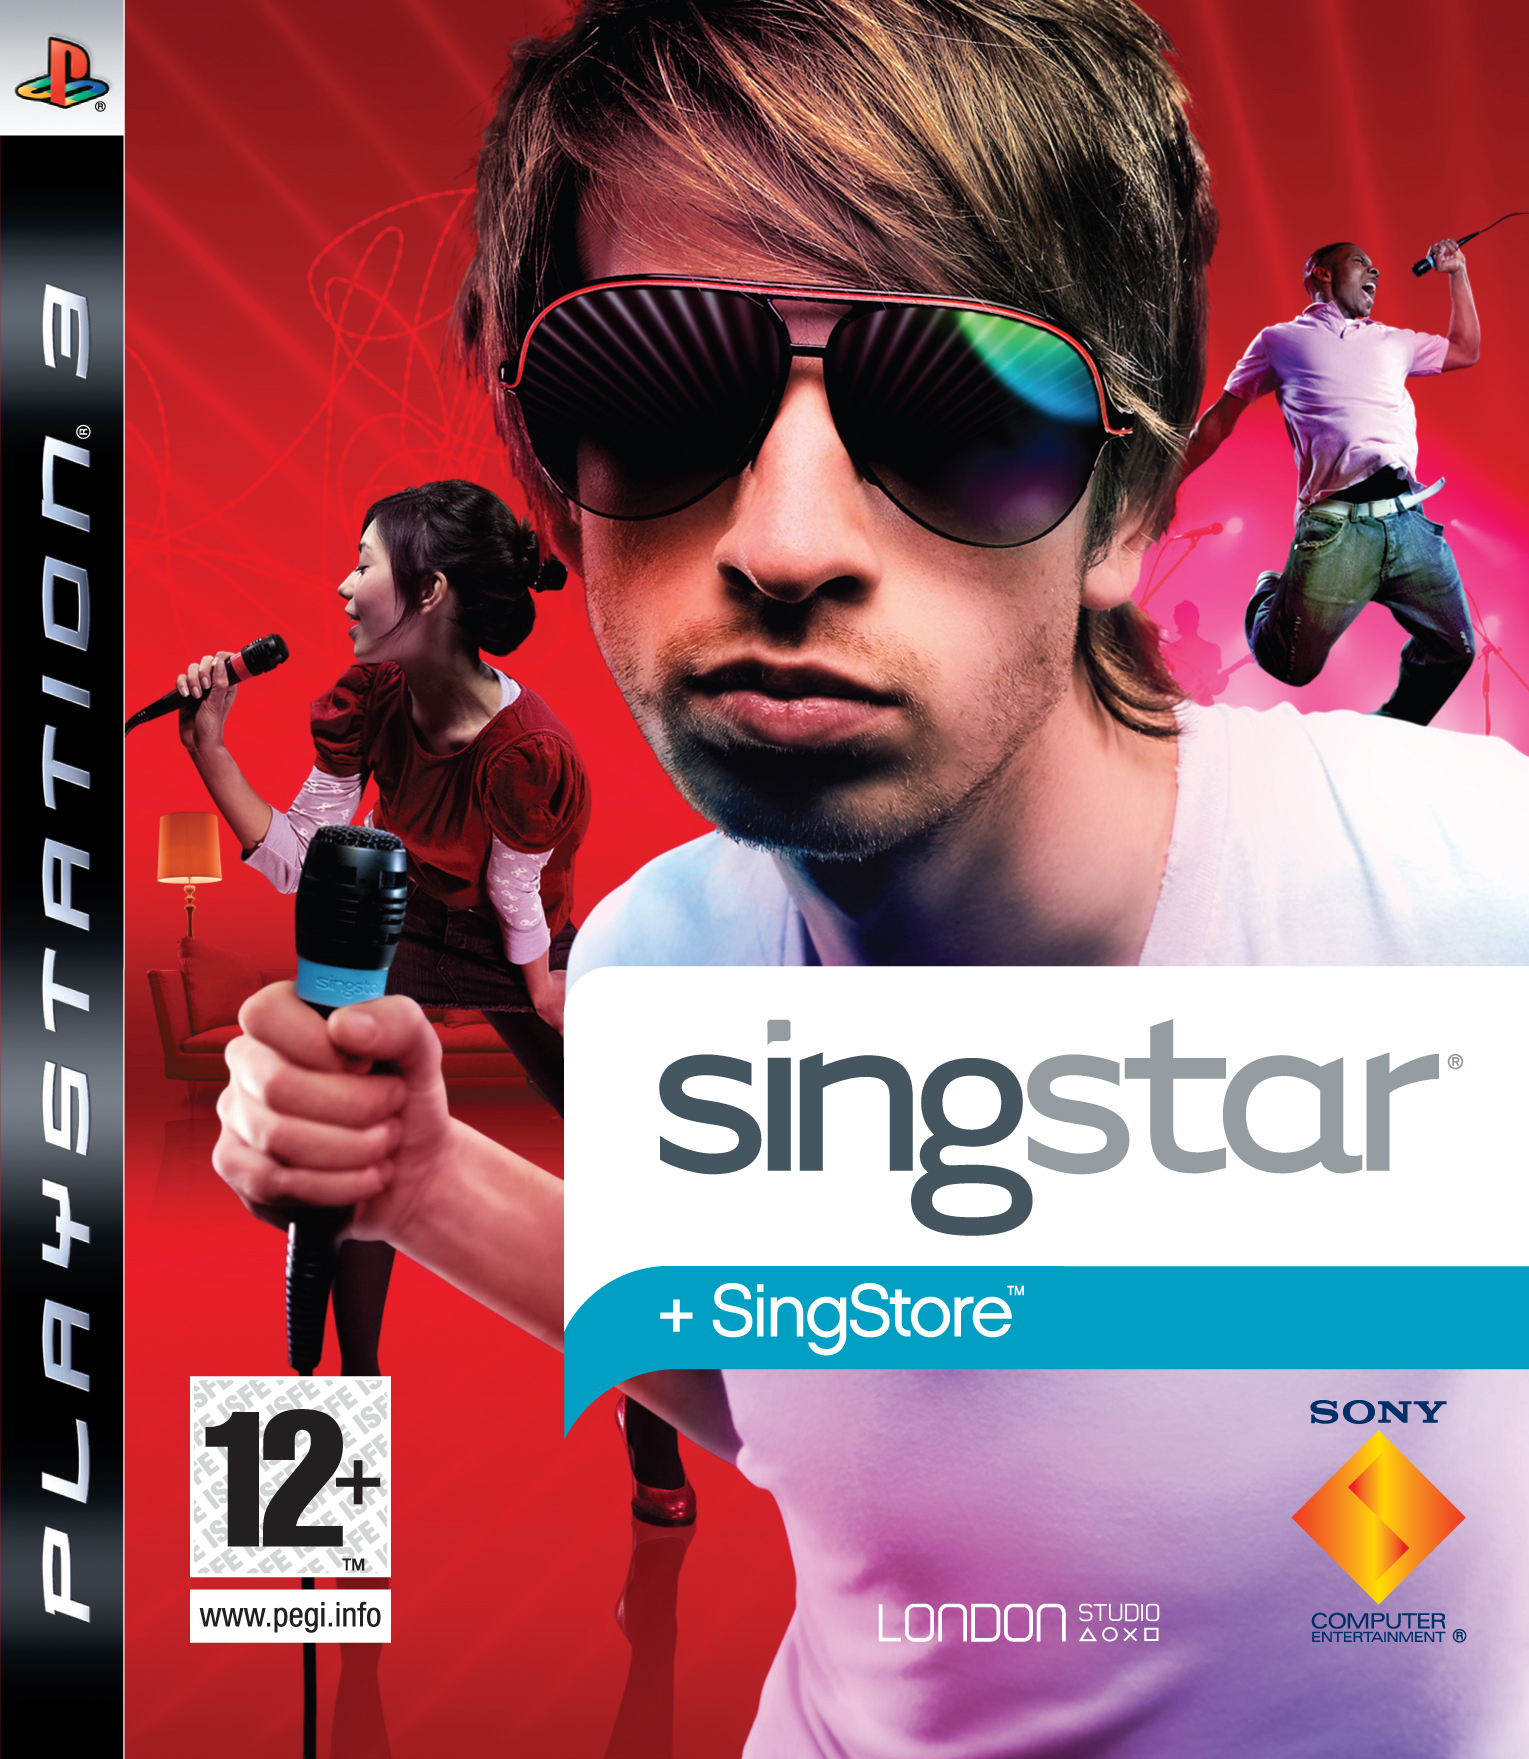 SingstarPS3 PS3 jaquette